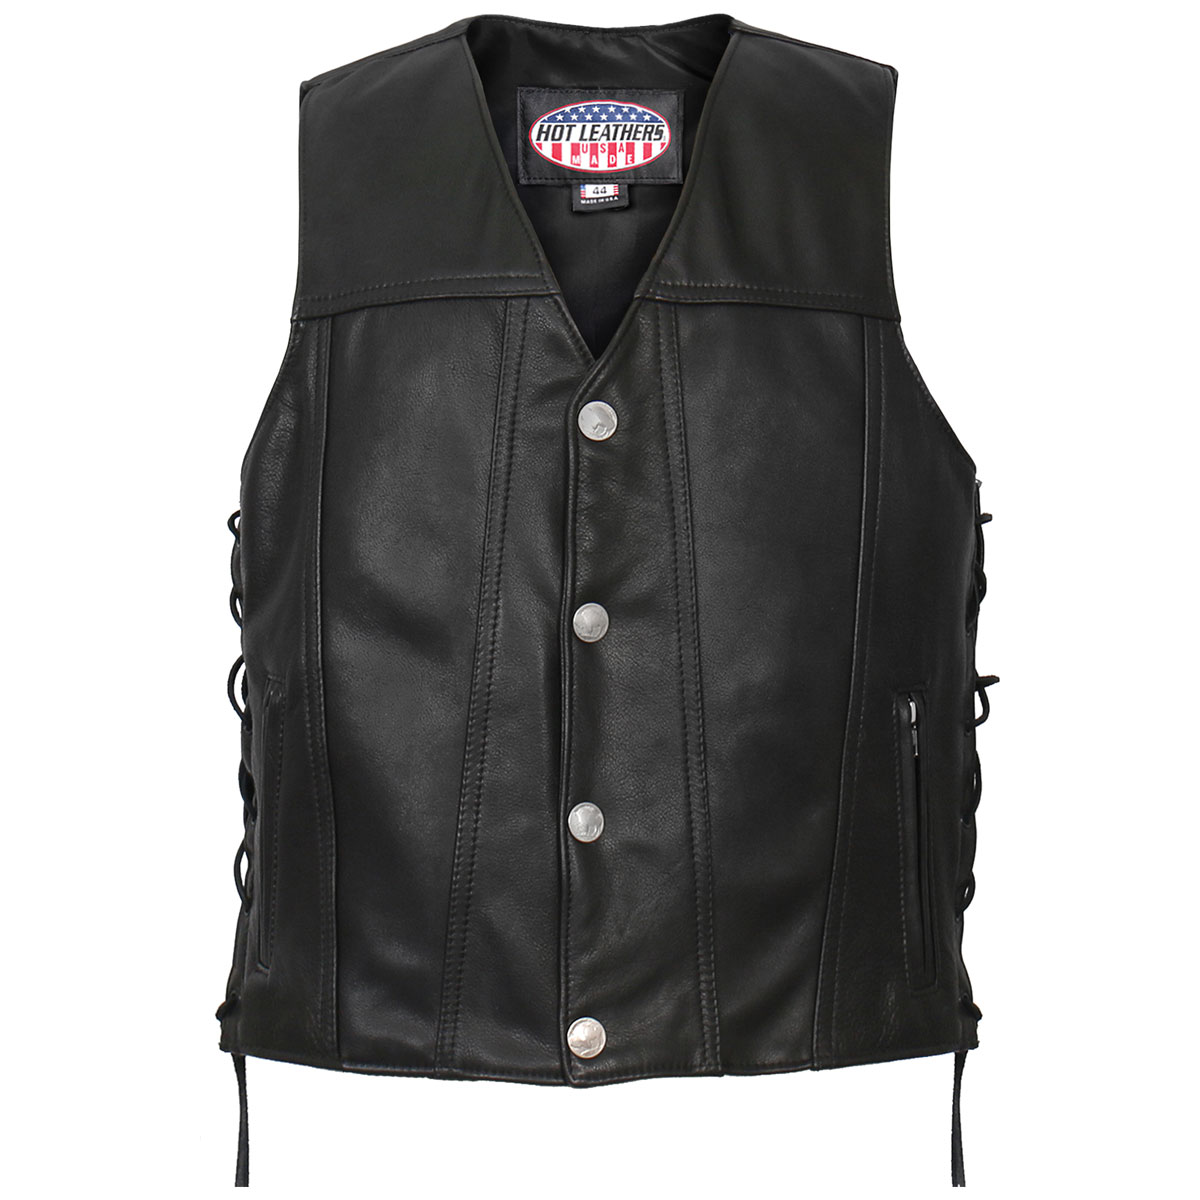 Hot Leathers Men's USA Made Buffalo Nickel Snap Black Leather Vest